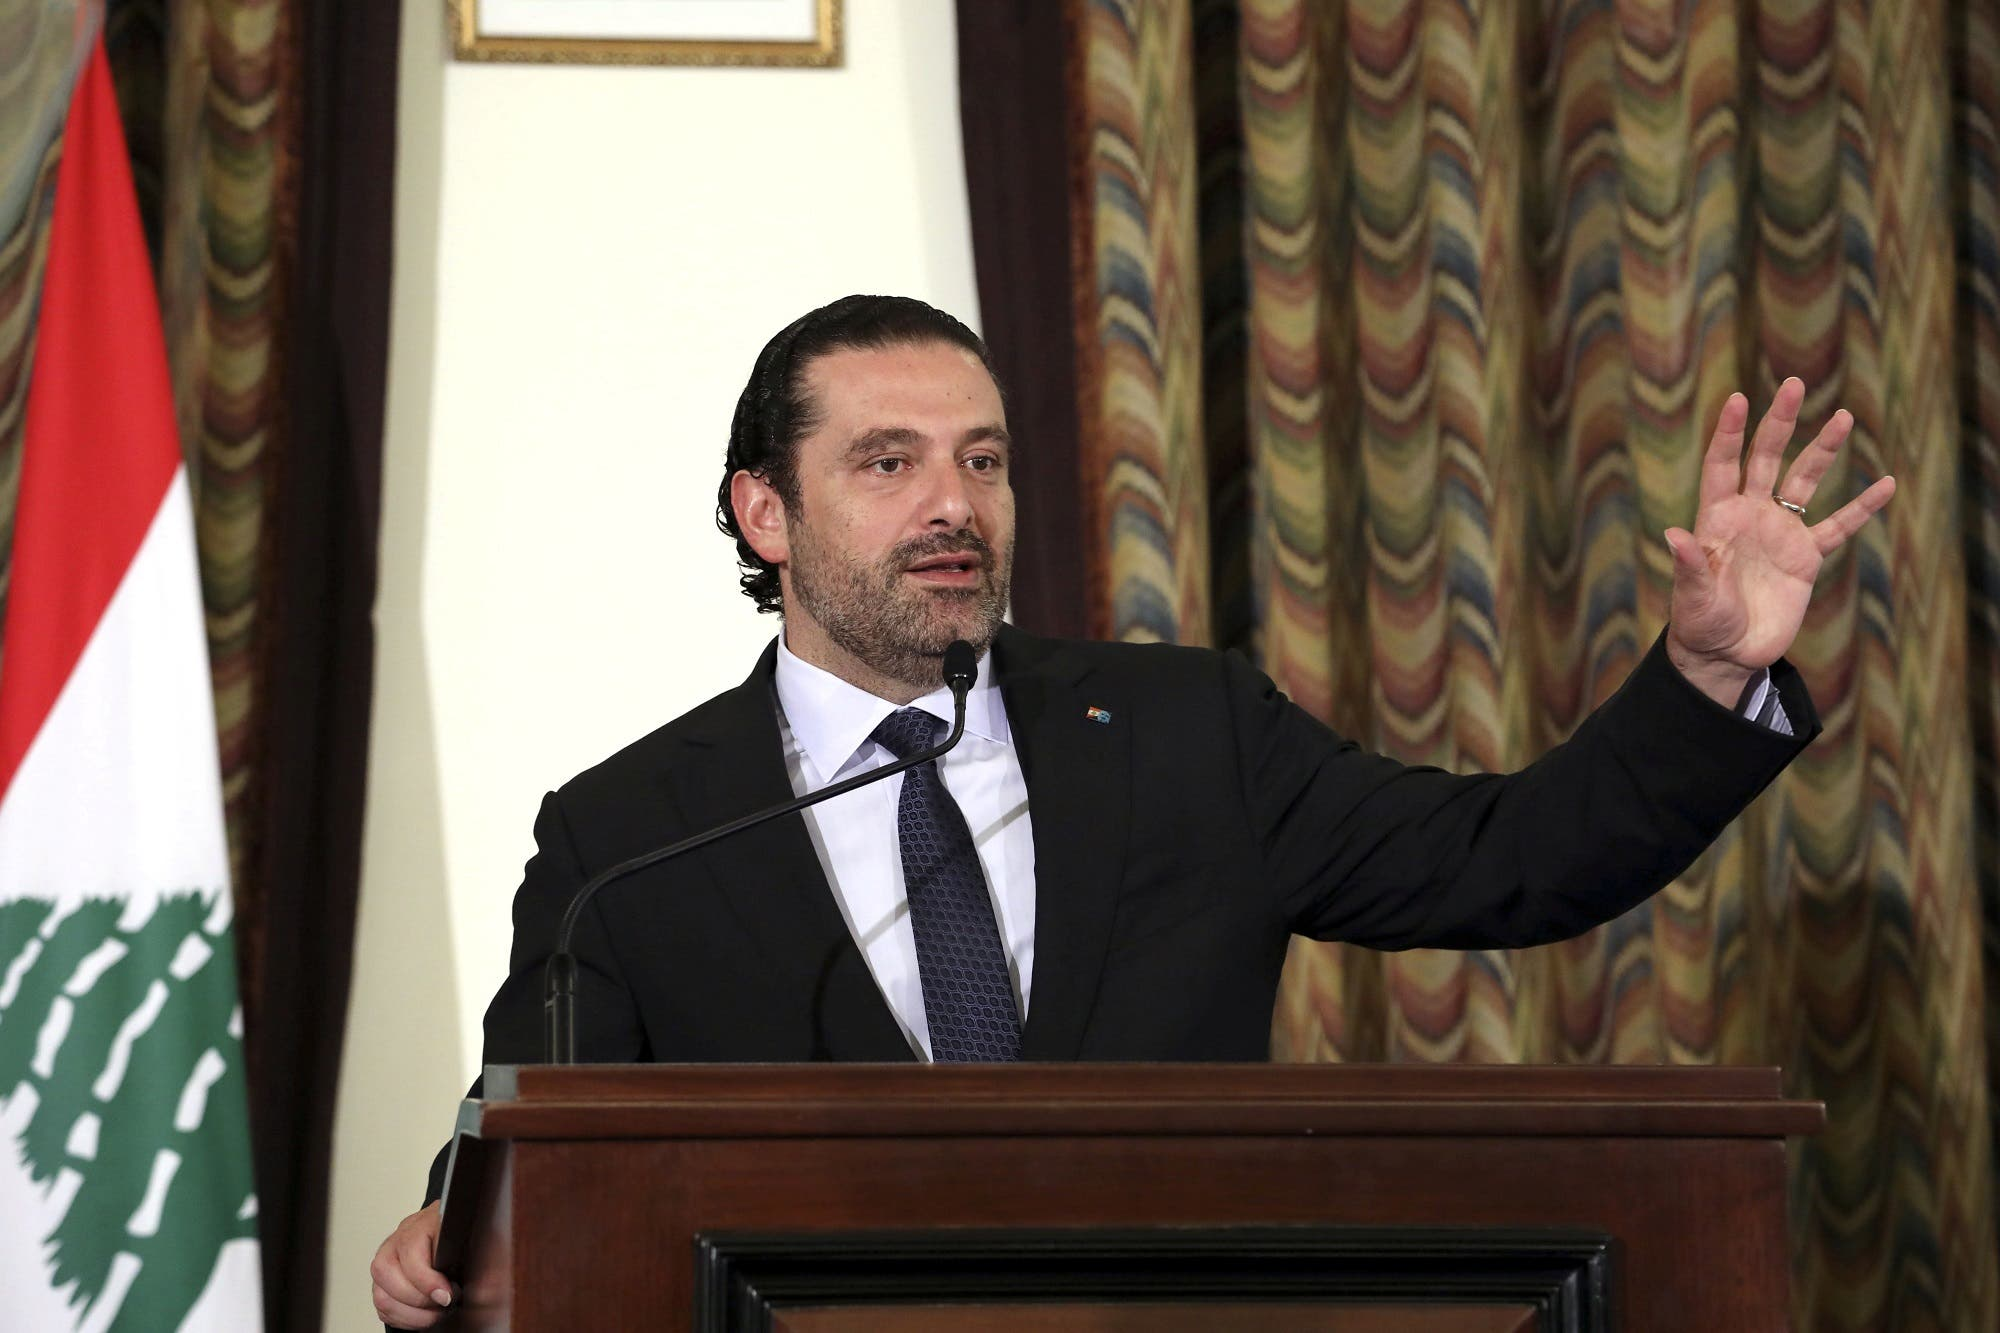 Saad Hariri gestures as he talks at the governmental palace in Beirut on August 10, 2017. (Reuters)